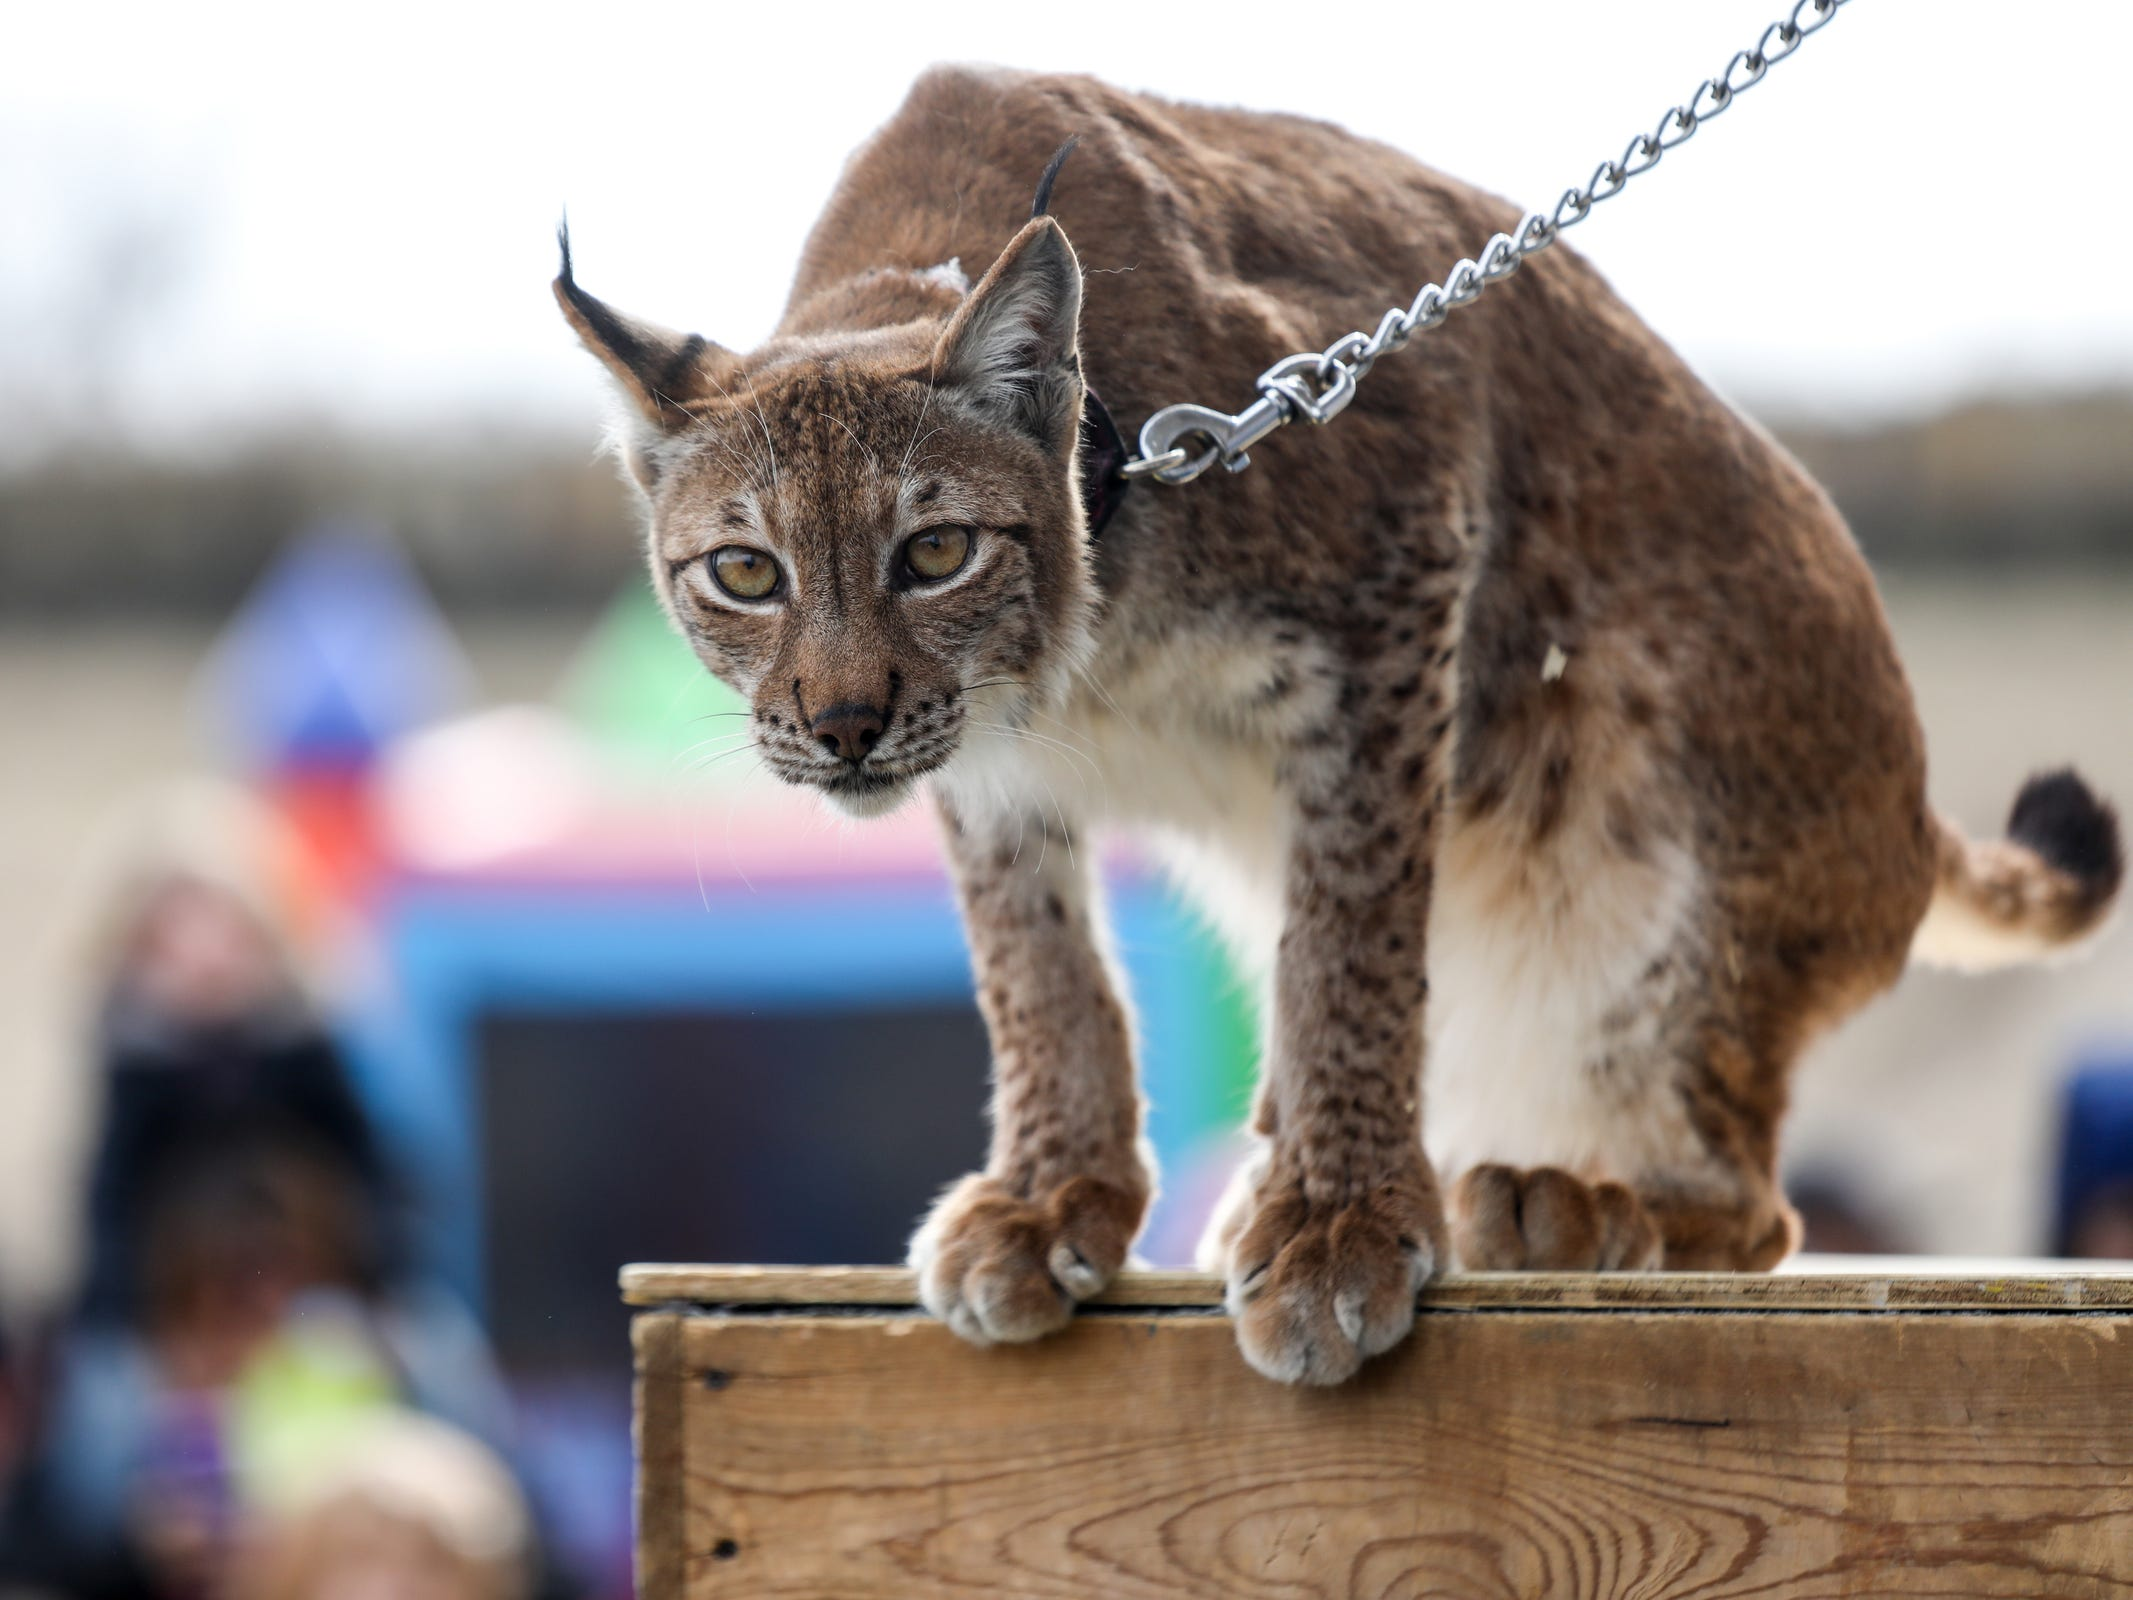 Elsa, a Siberian Lynx, is brought out for display with Nelson's Wildlife Safari, during the Detroit Parks and Recreation Annual Easter Fun Fest at Historic Fort Wayne in Detroit on Saturday, March 31, 2018.